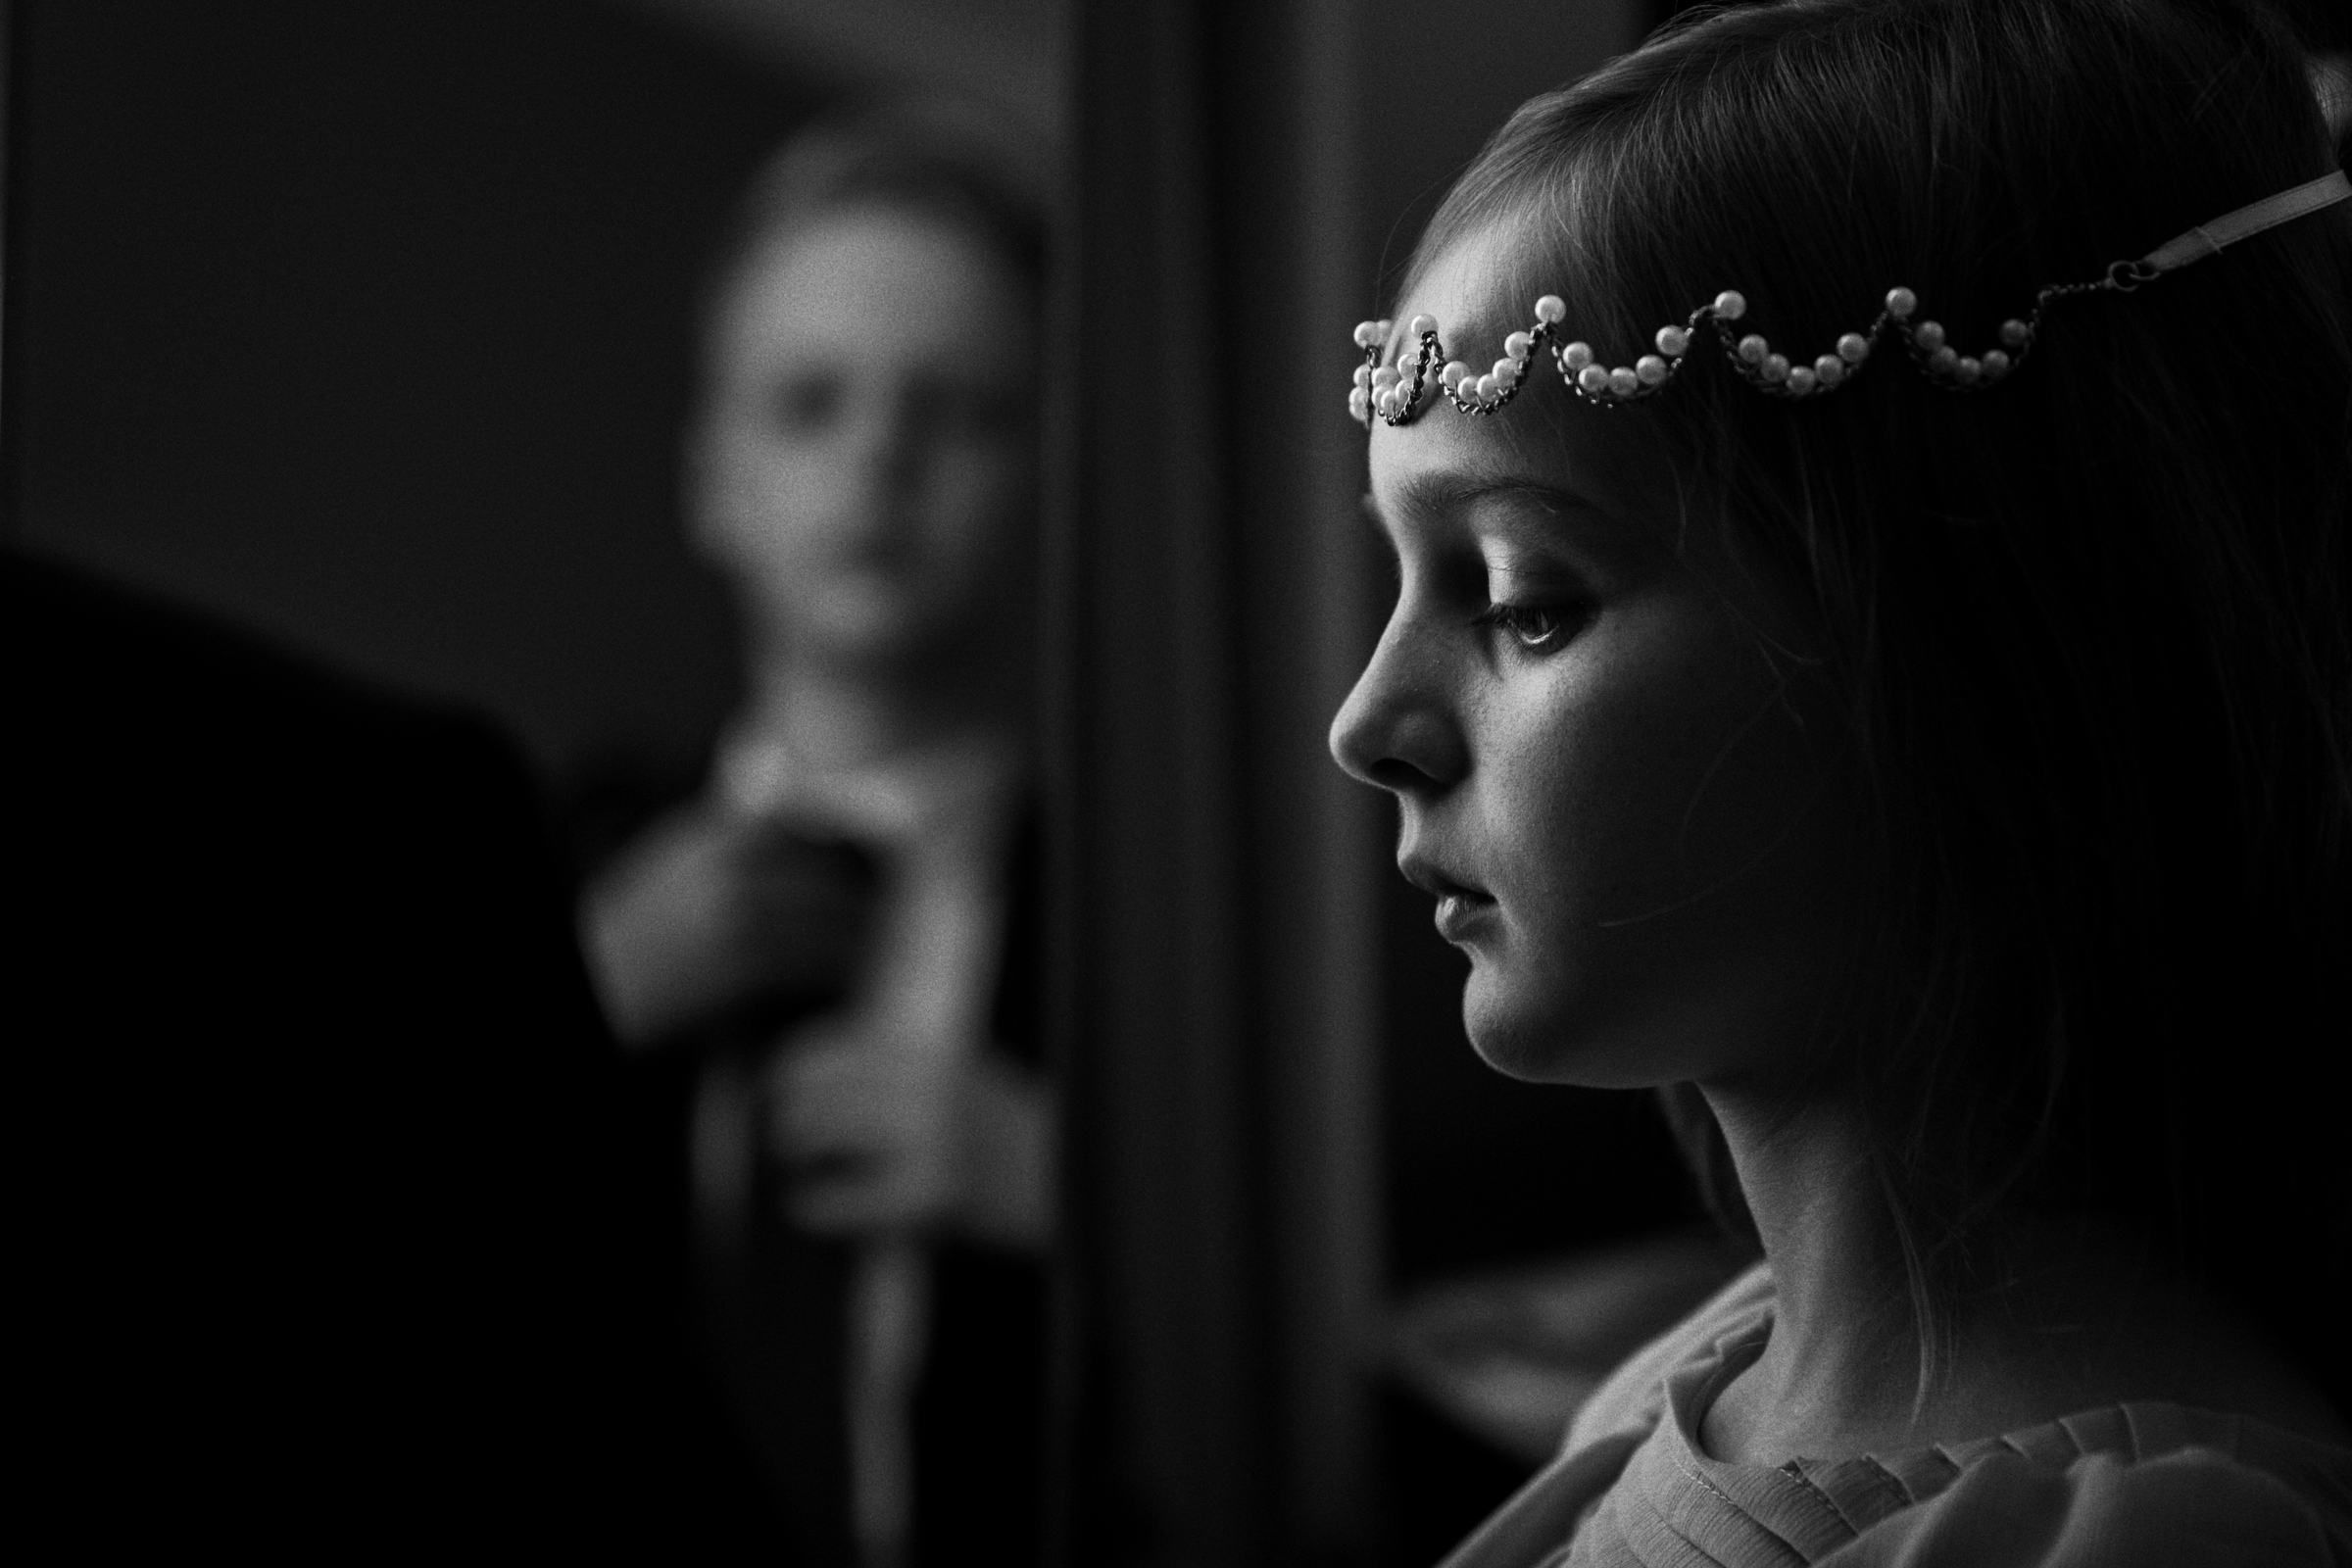 Flower girl and ring bearer prepare for wedding ceremony - photo by Jeff Ascough, London